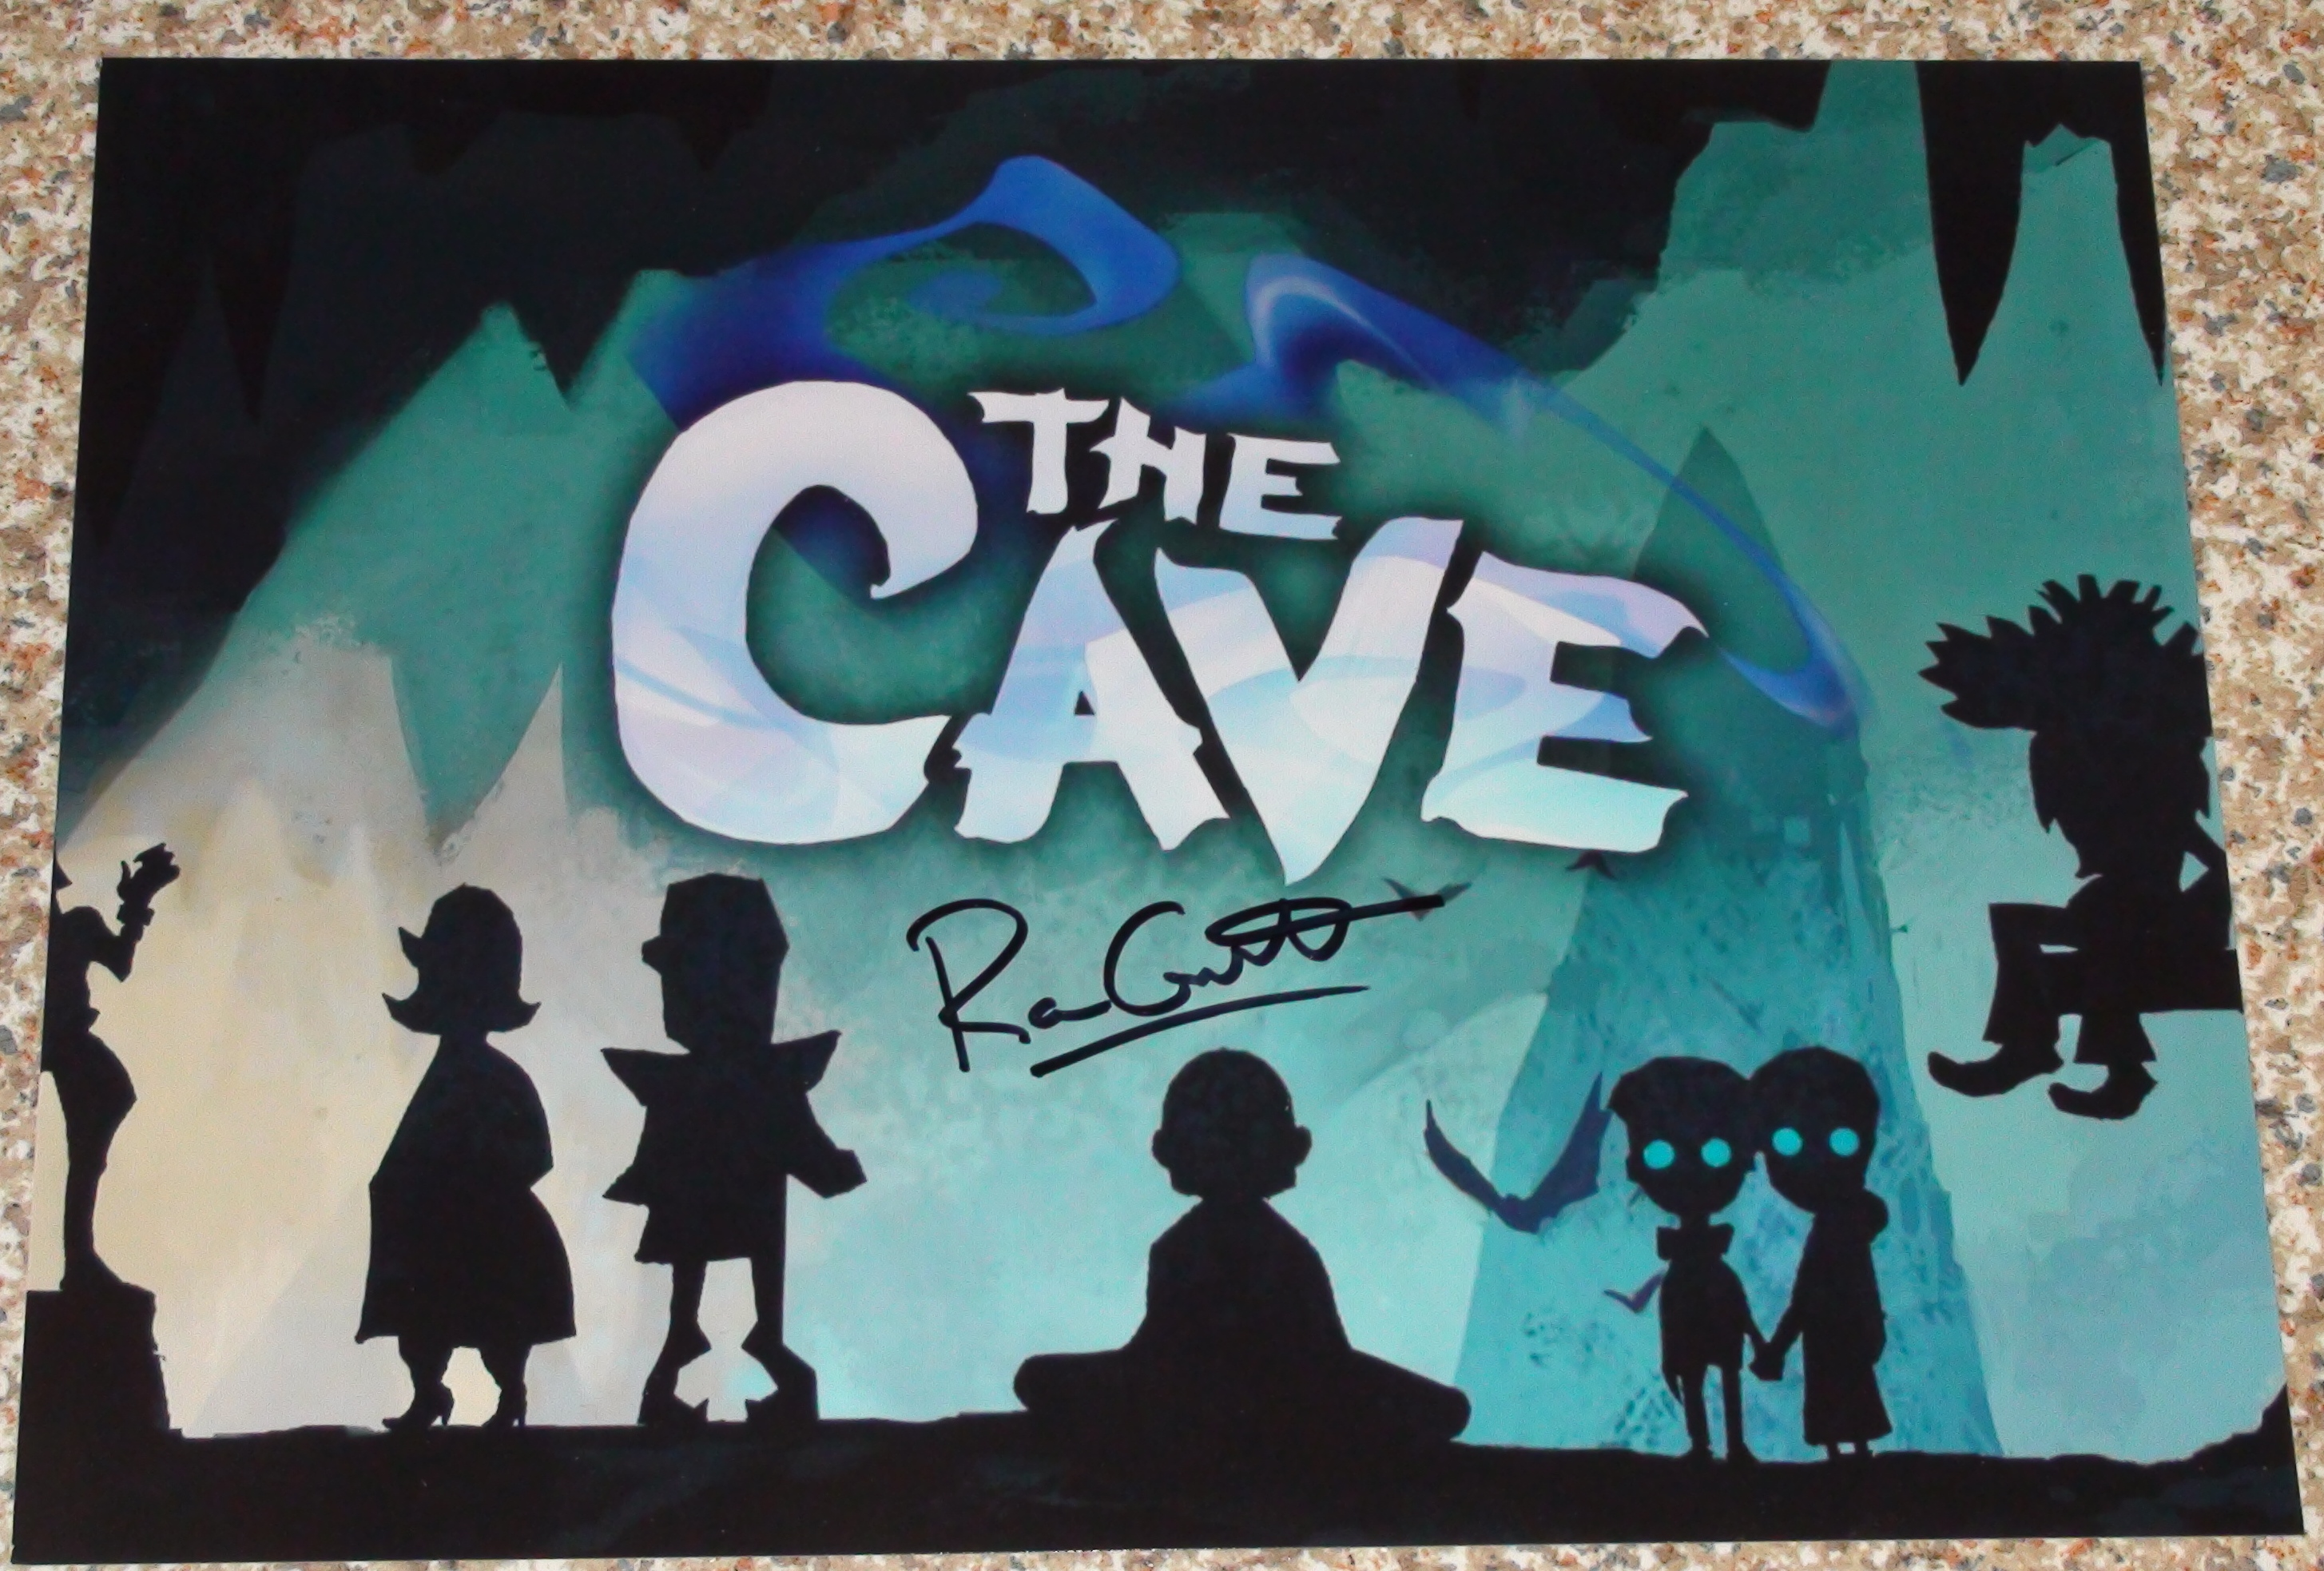 The Cave - Ron Gilbert